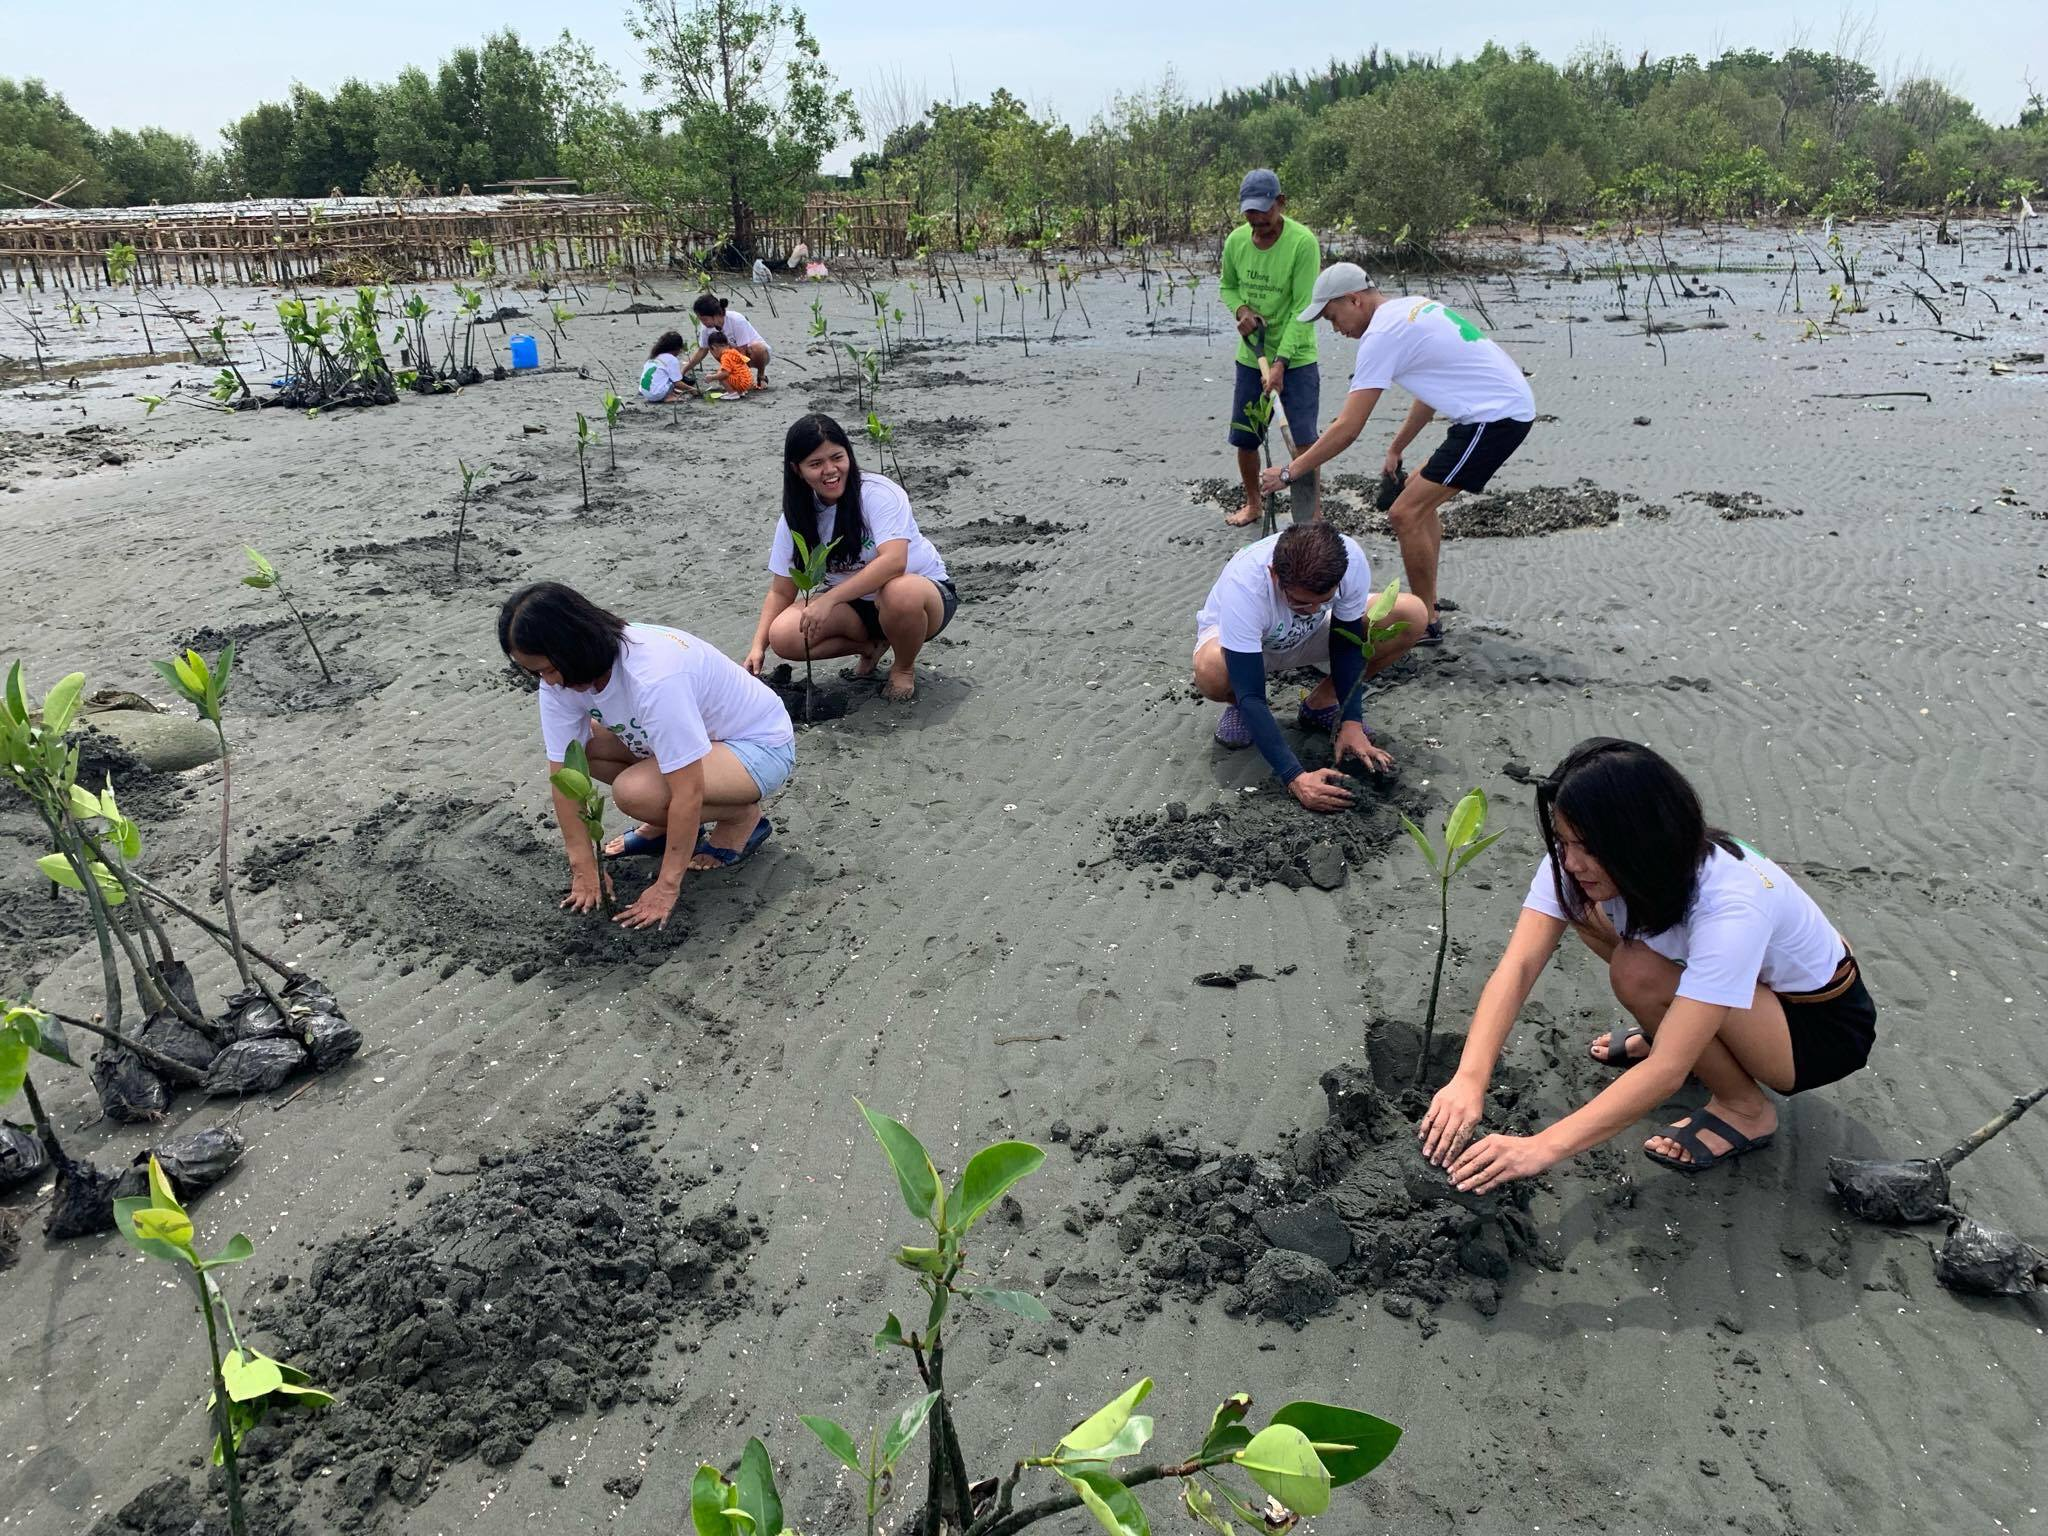 Sowing mangrove seeds of inspiration in the Philippines